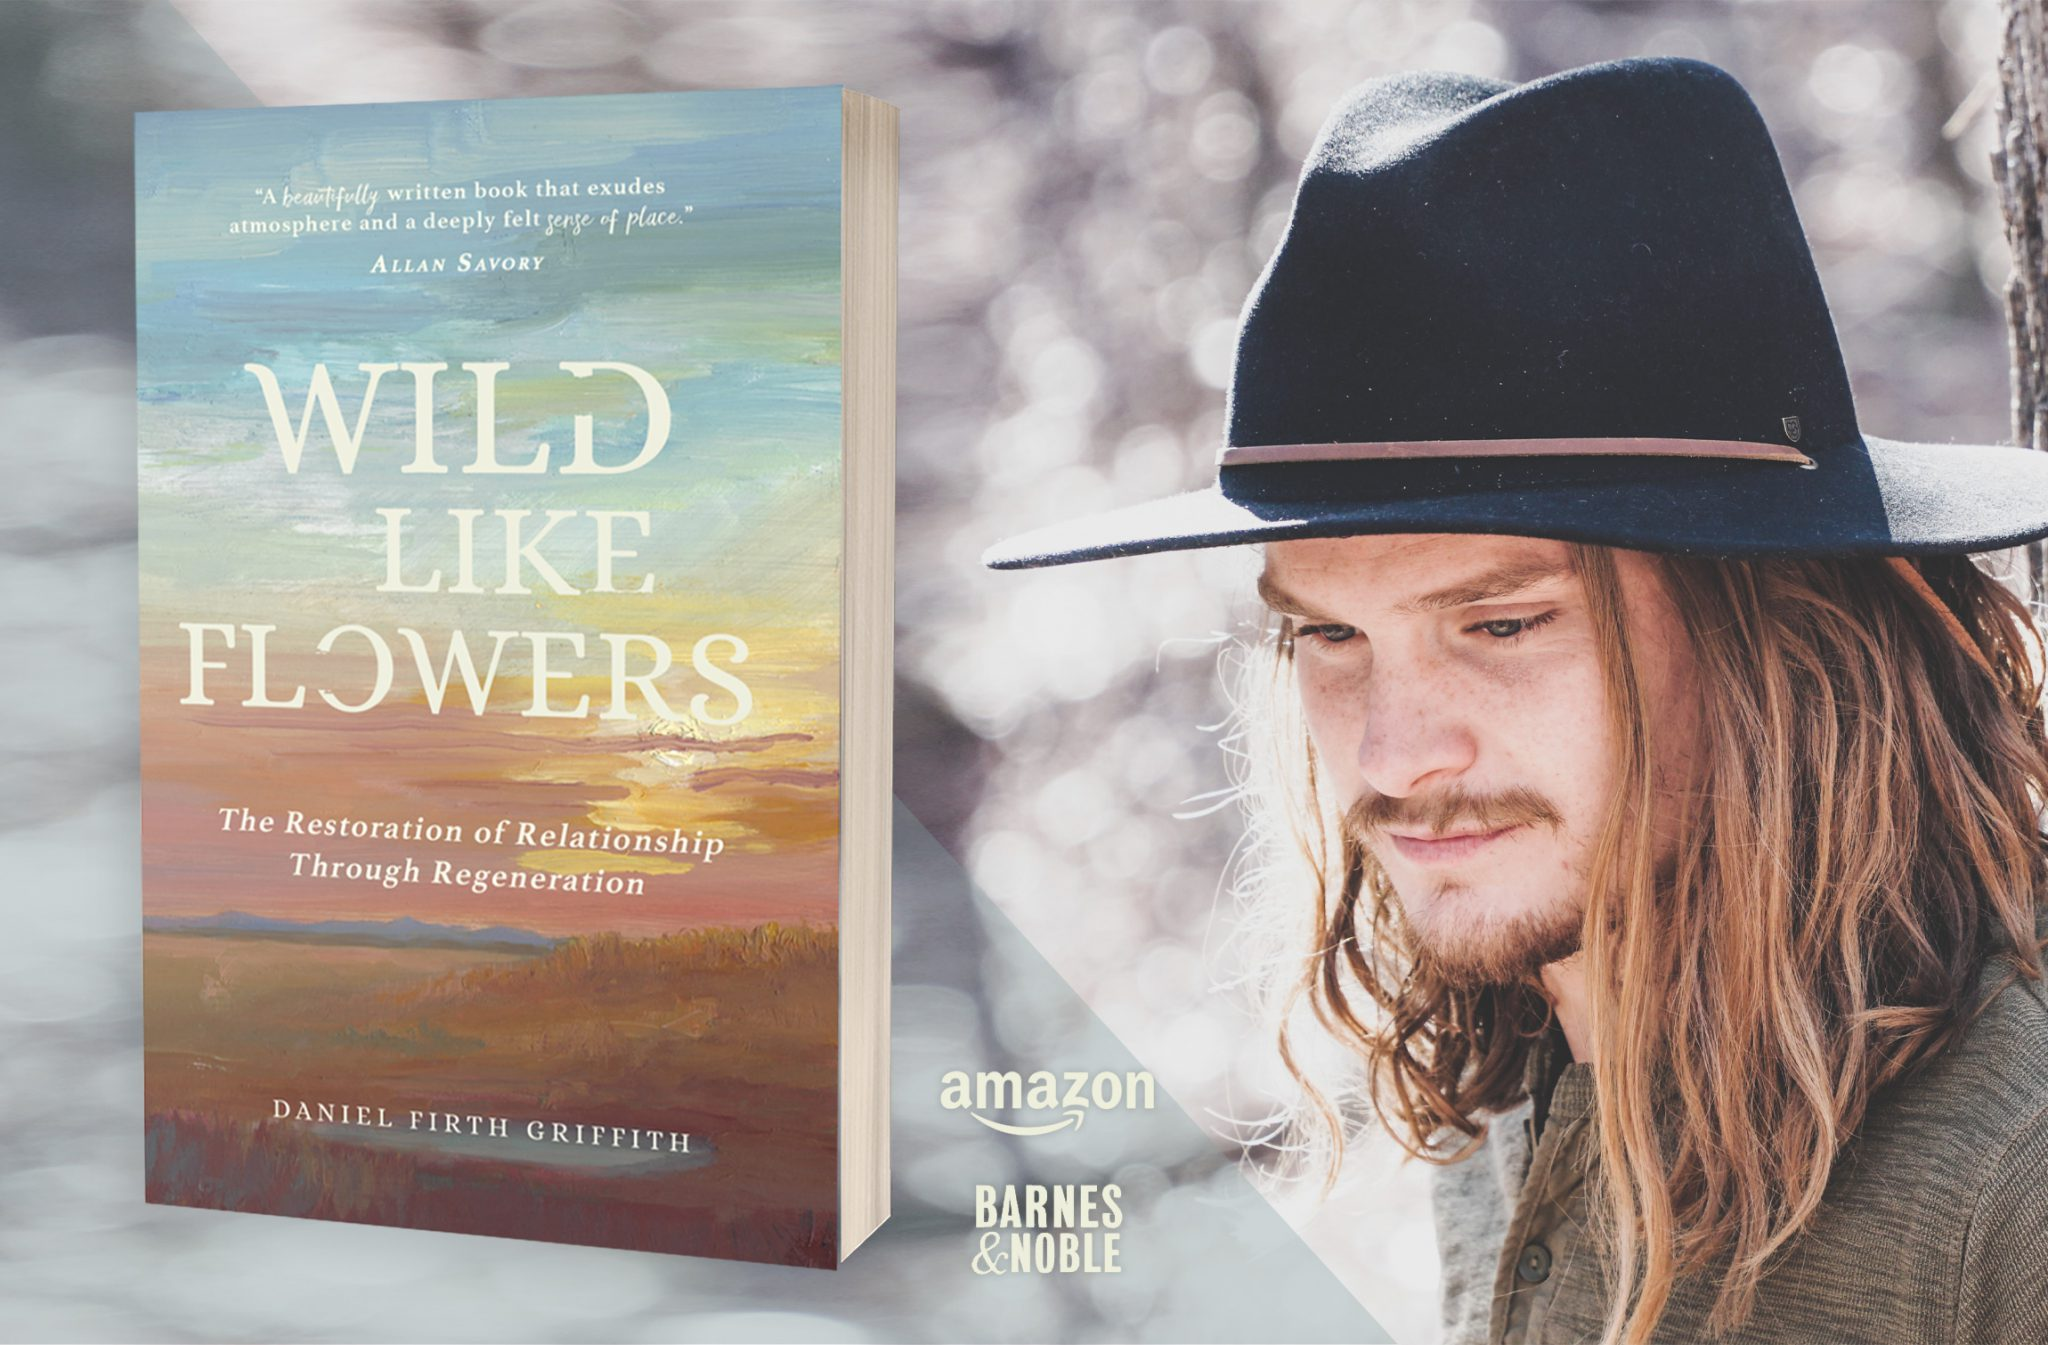 Wild Like Flowers book and photo of the author